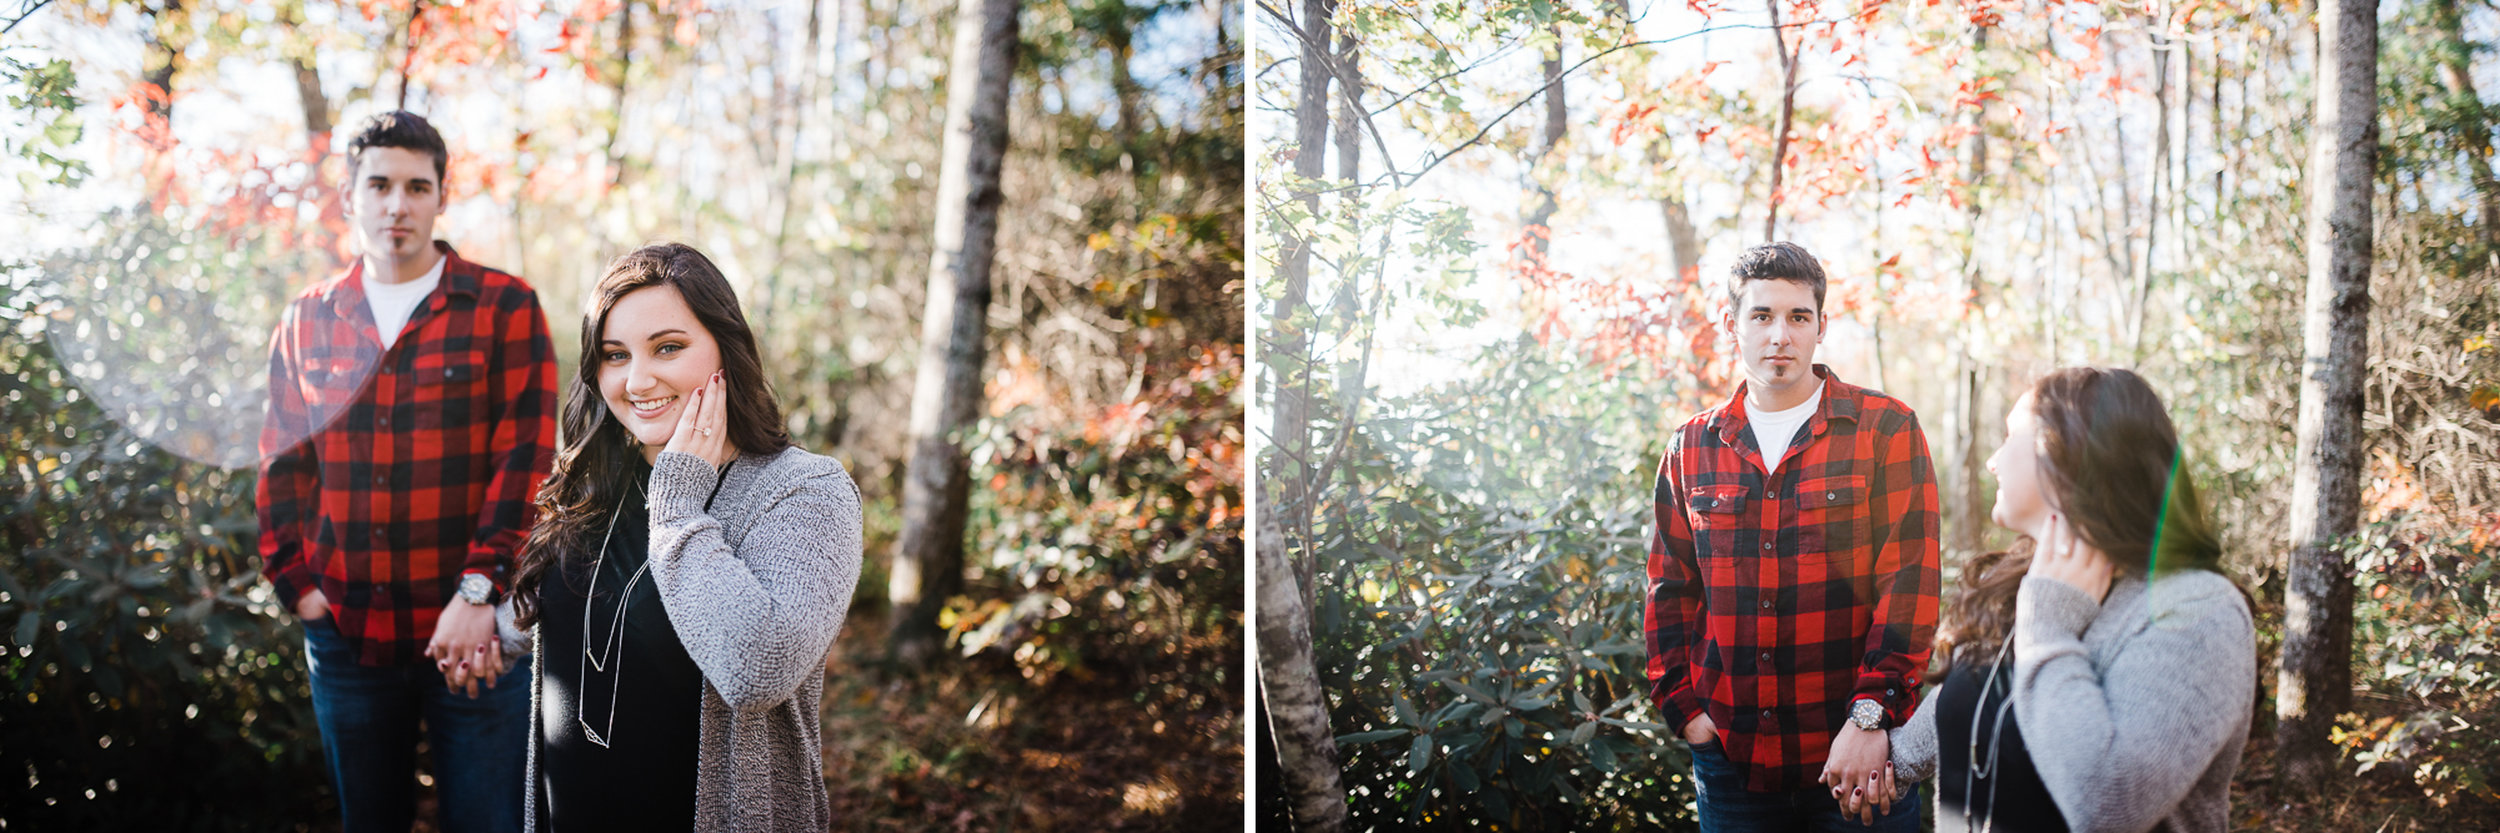 Mountain Engagement Portraits, Fall Engagement Photos, Engaged, 16.jpg